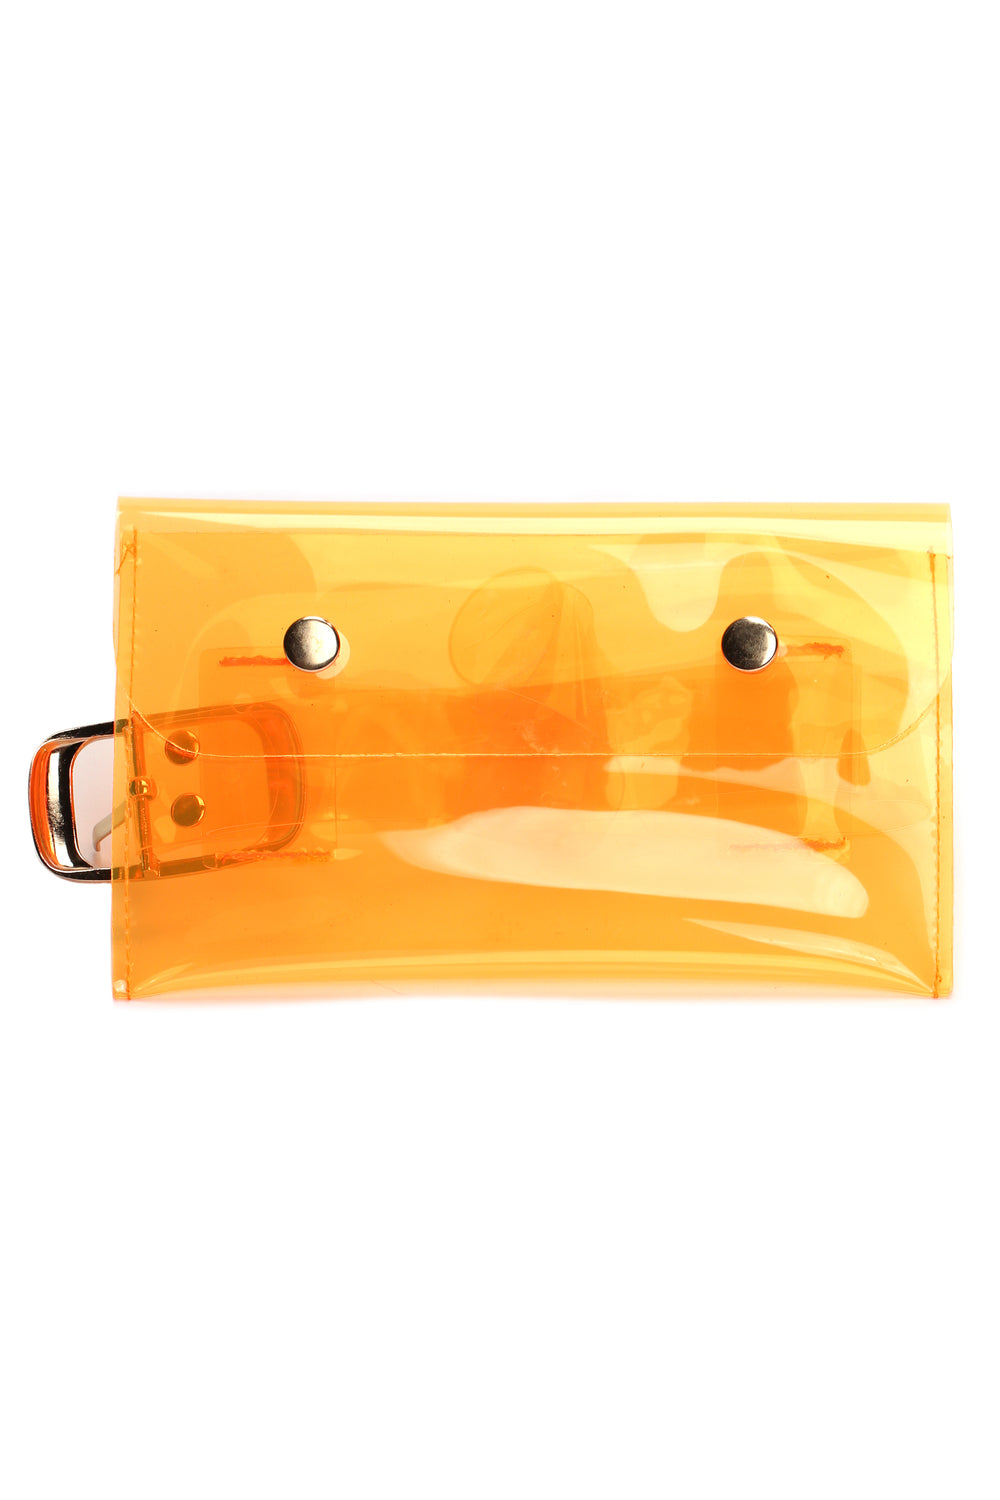 Keep It Transparent Fanny Pack - Orange